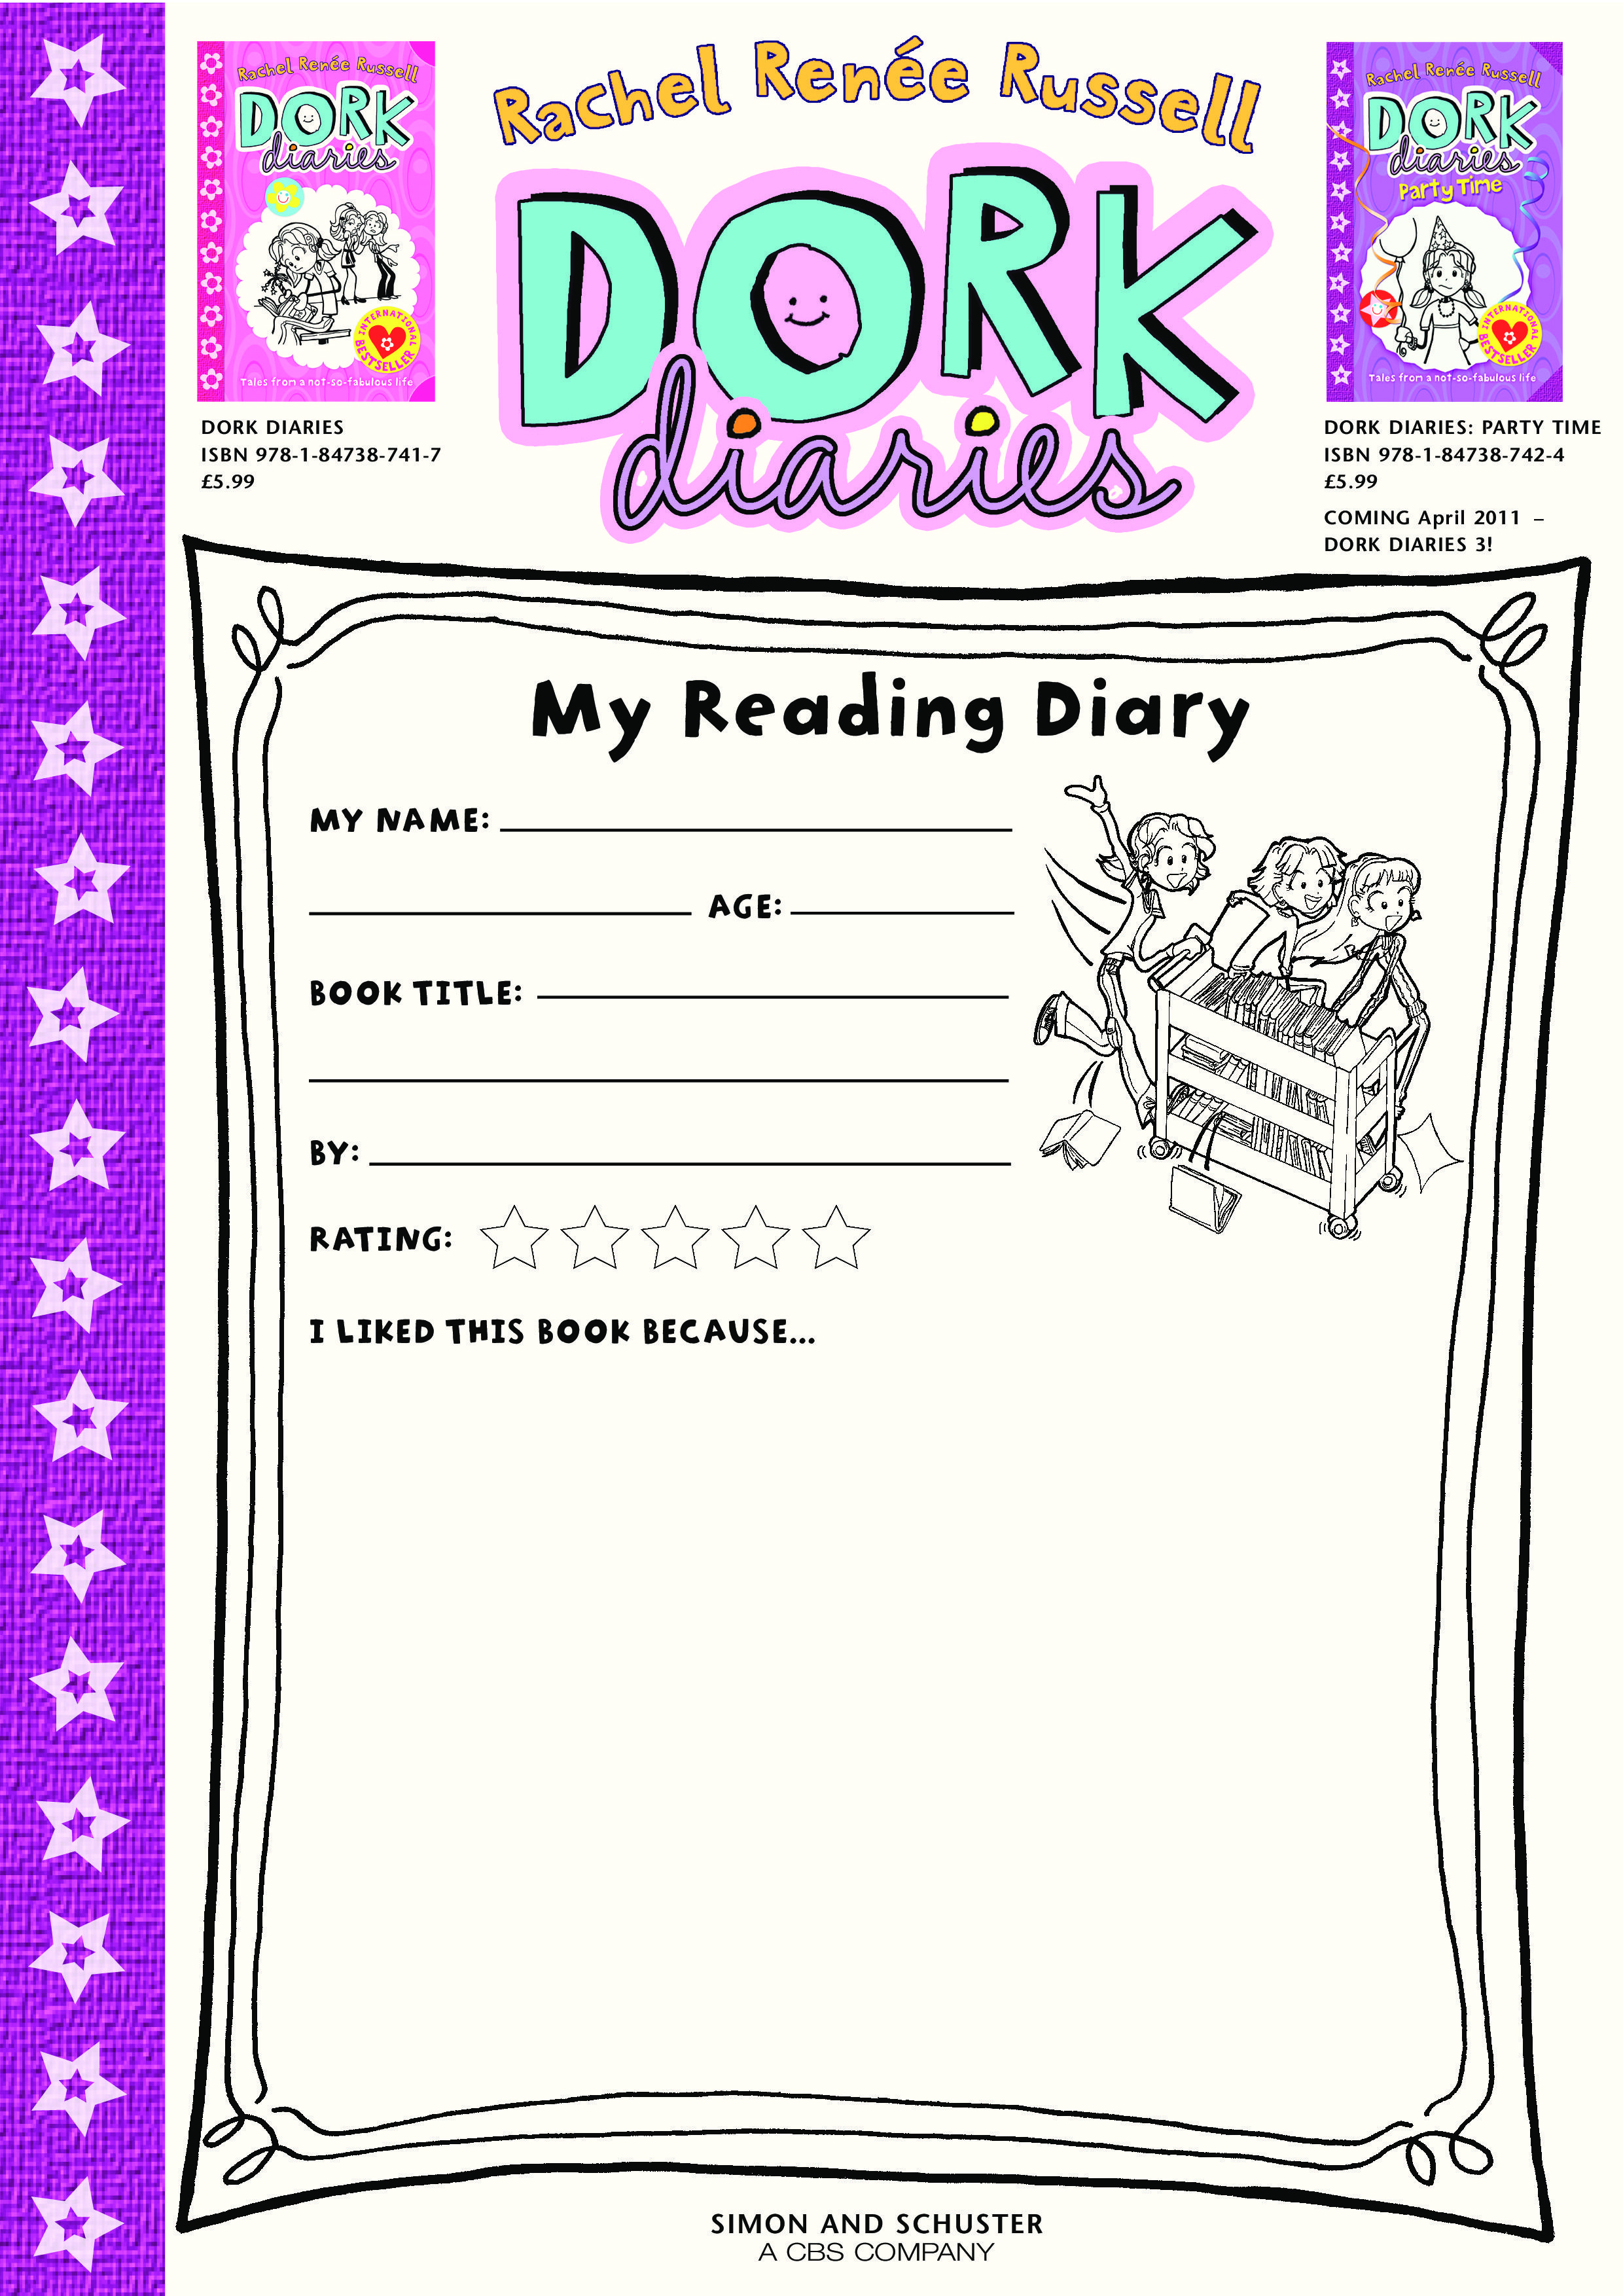 Coloring pages for dork diaries - Dork Diaries My Reading Diary